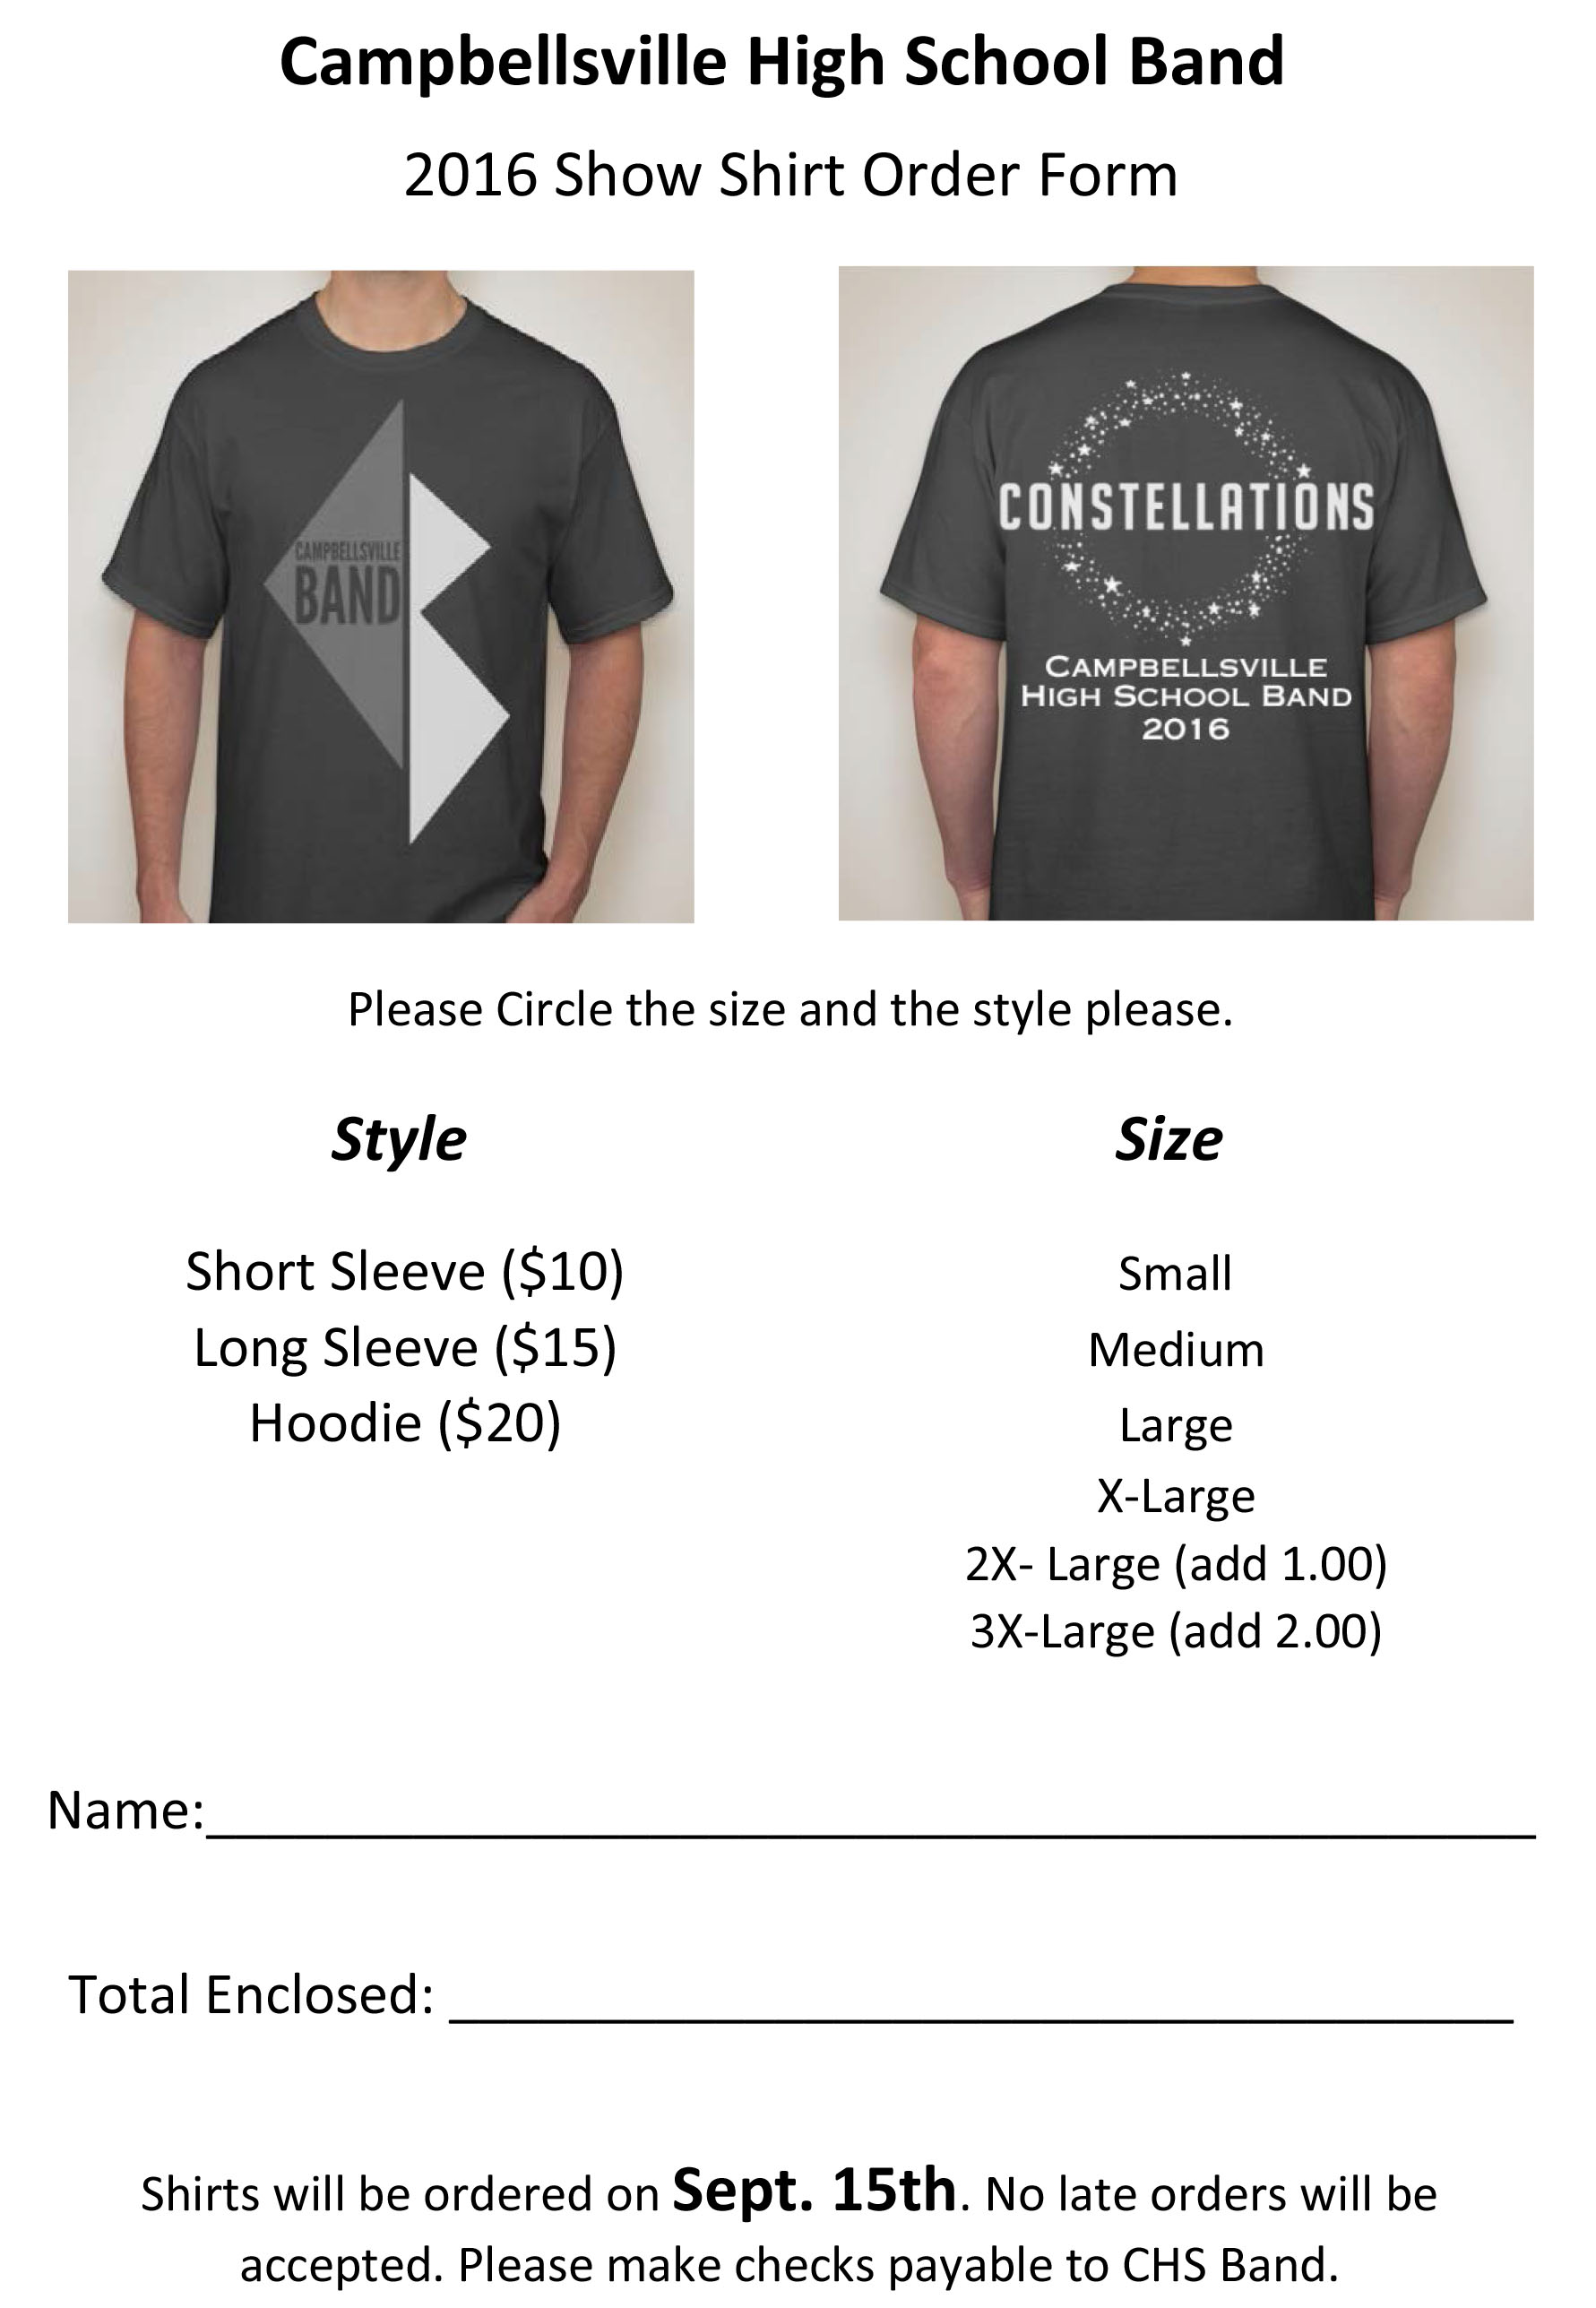 Campbellsville High School Marching Band is selling t-shirts, long-sleeved shirts and hooded sweatshirts.